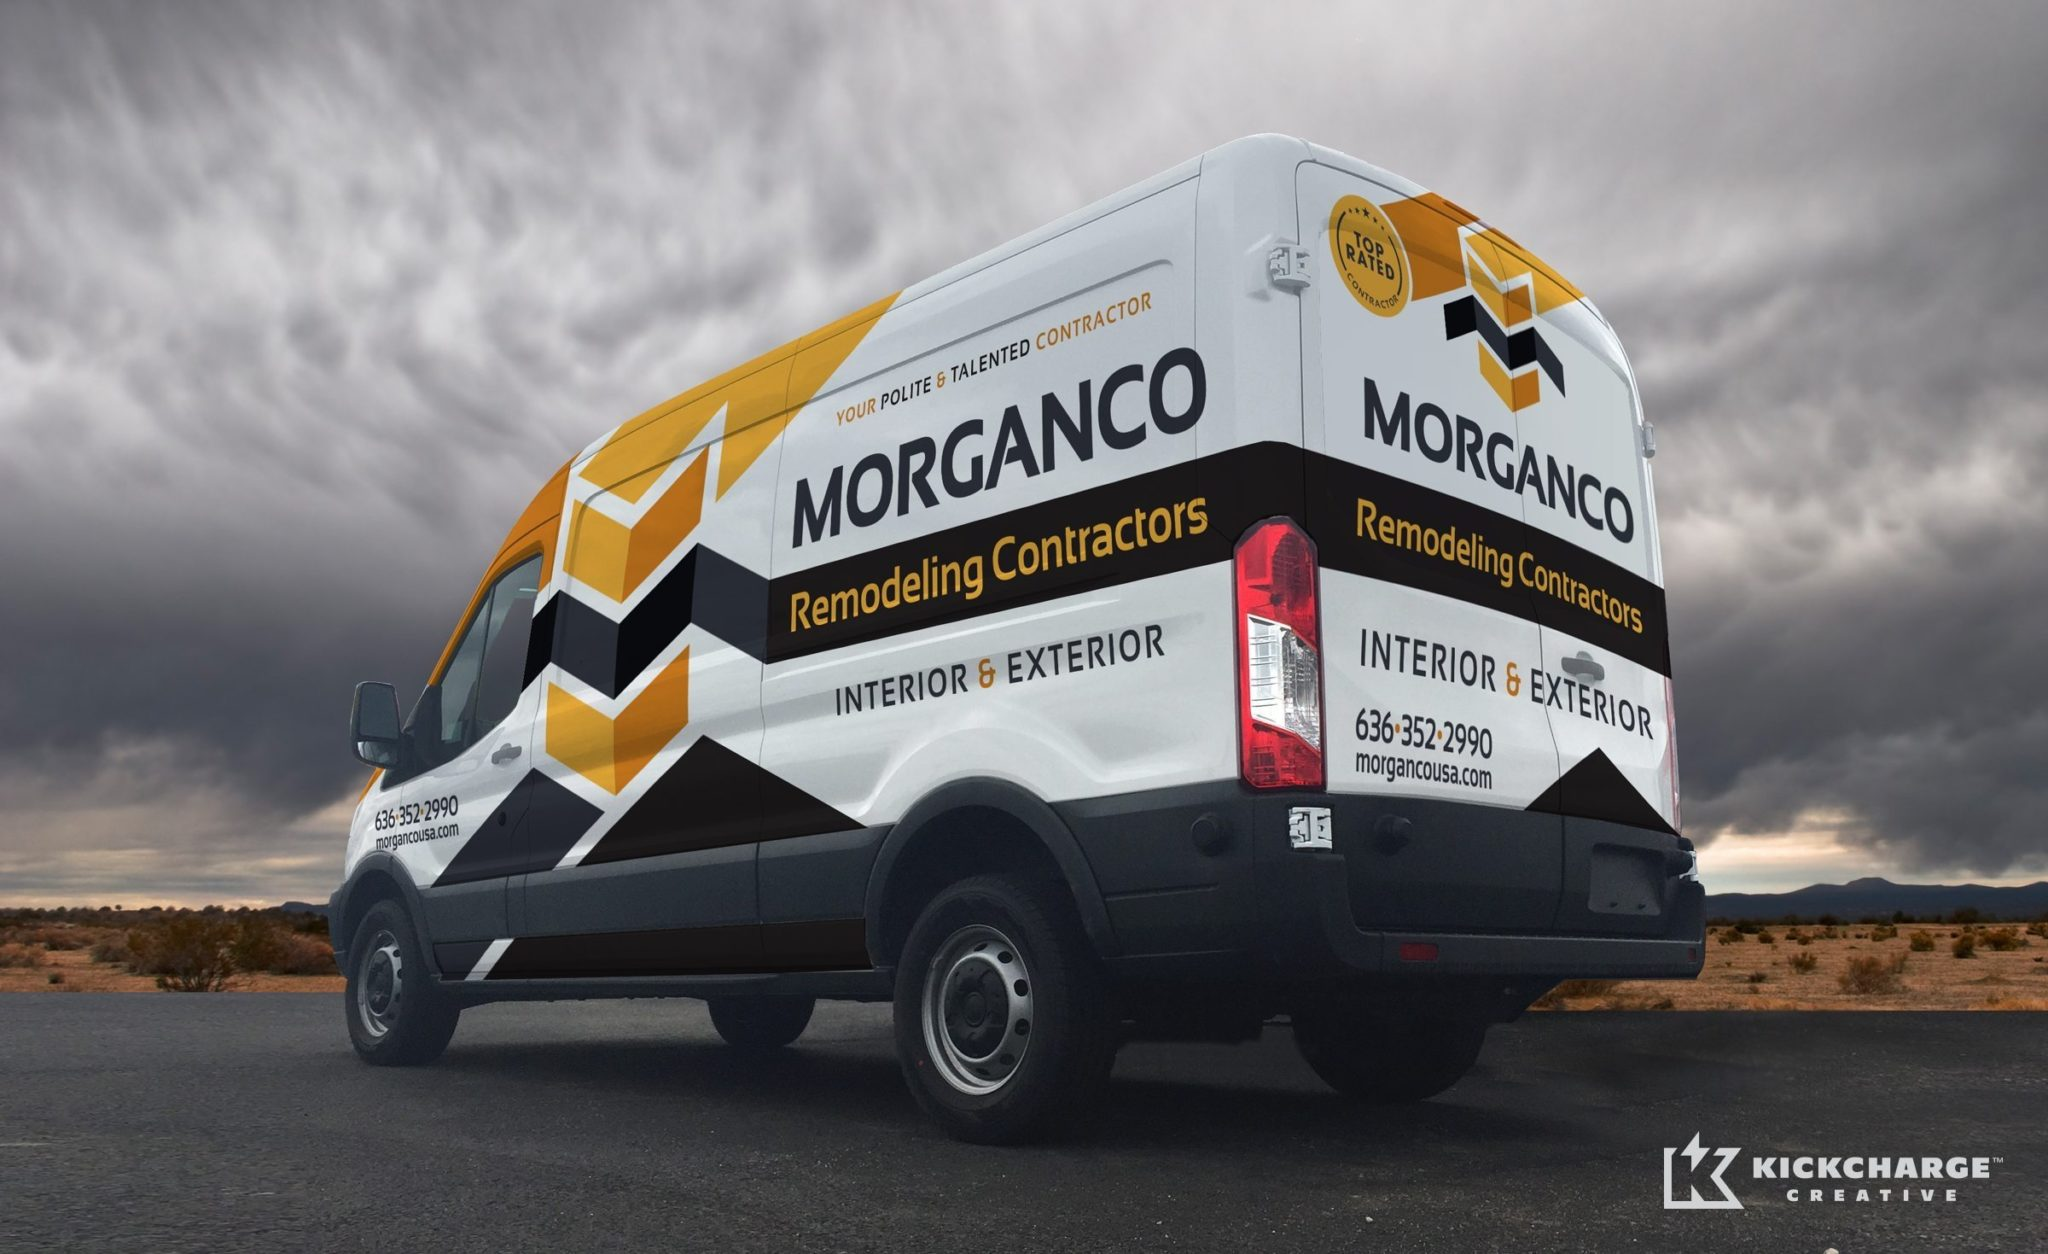 Vehicle Wraps Portfolio Kickcharge Creative Kickcharge Com